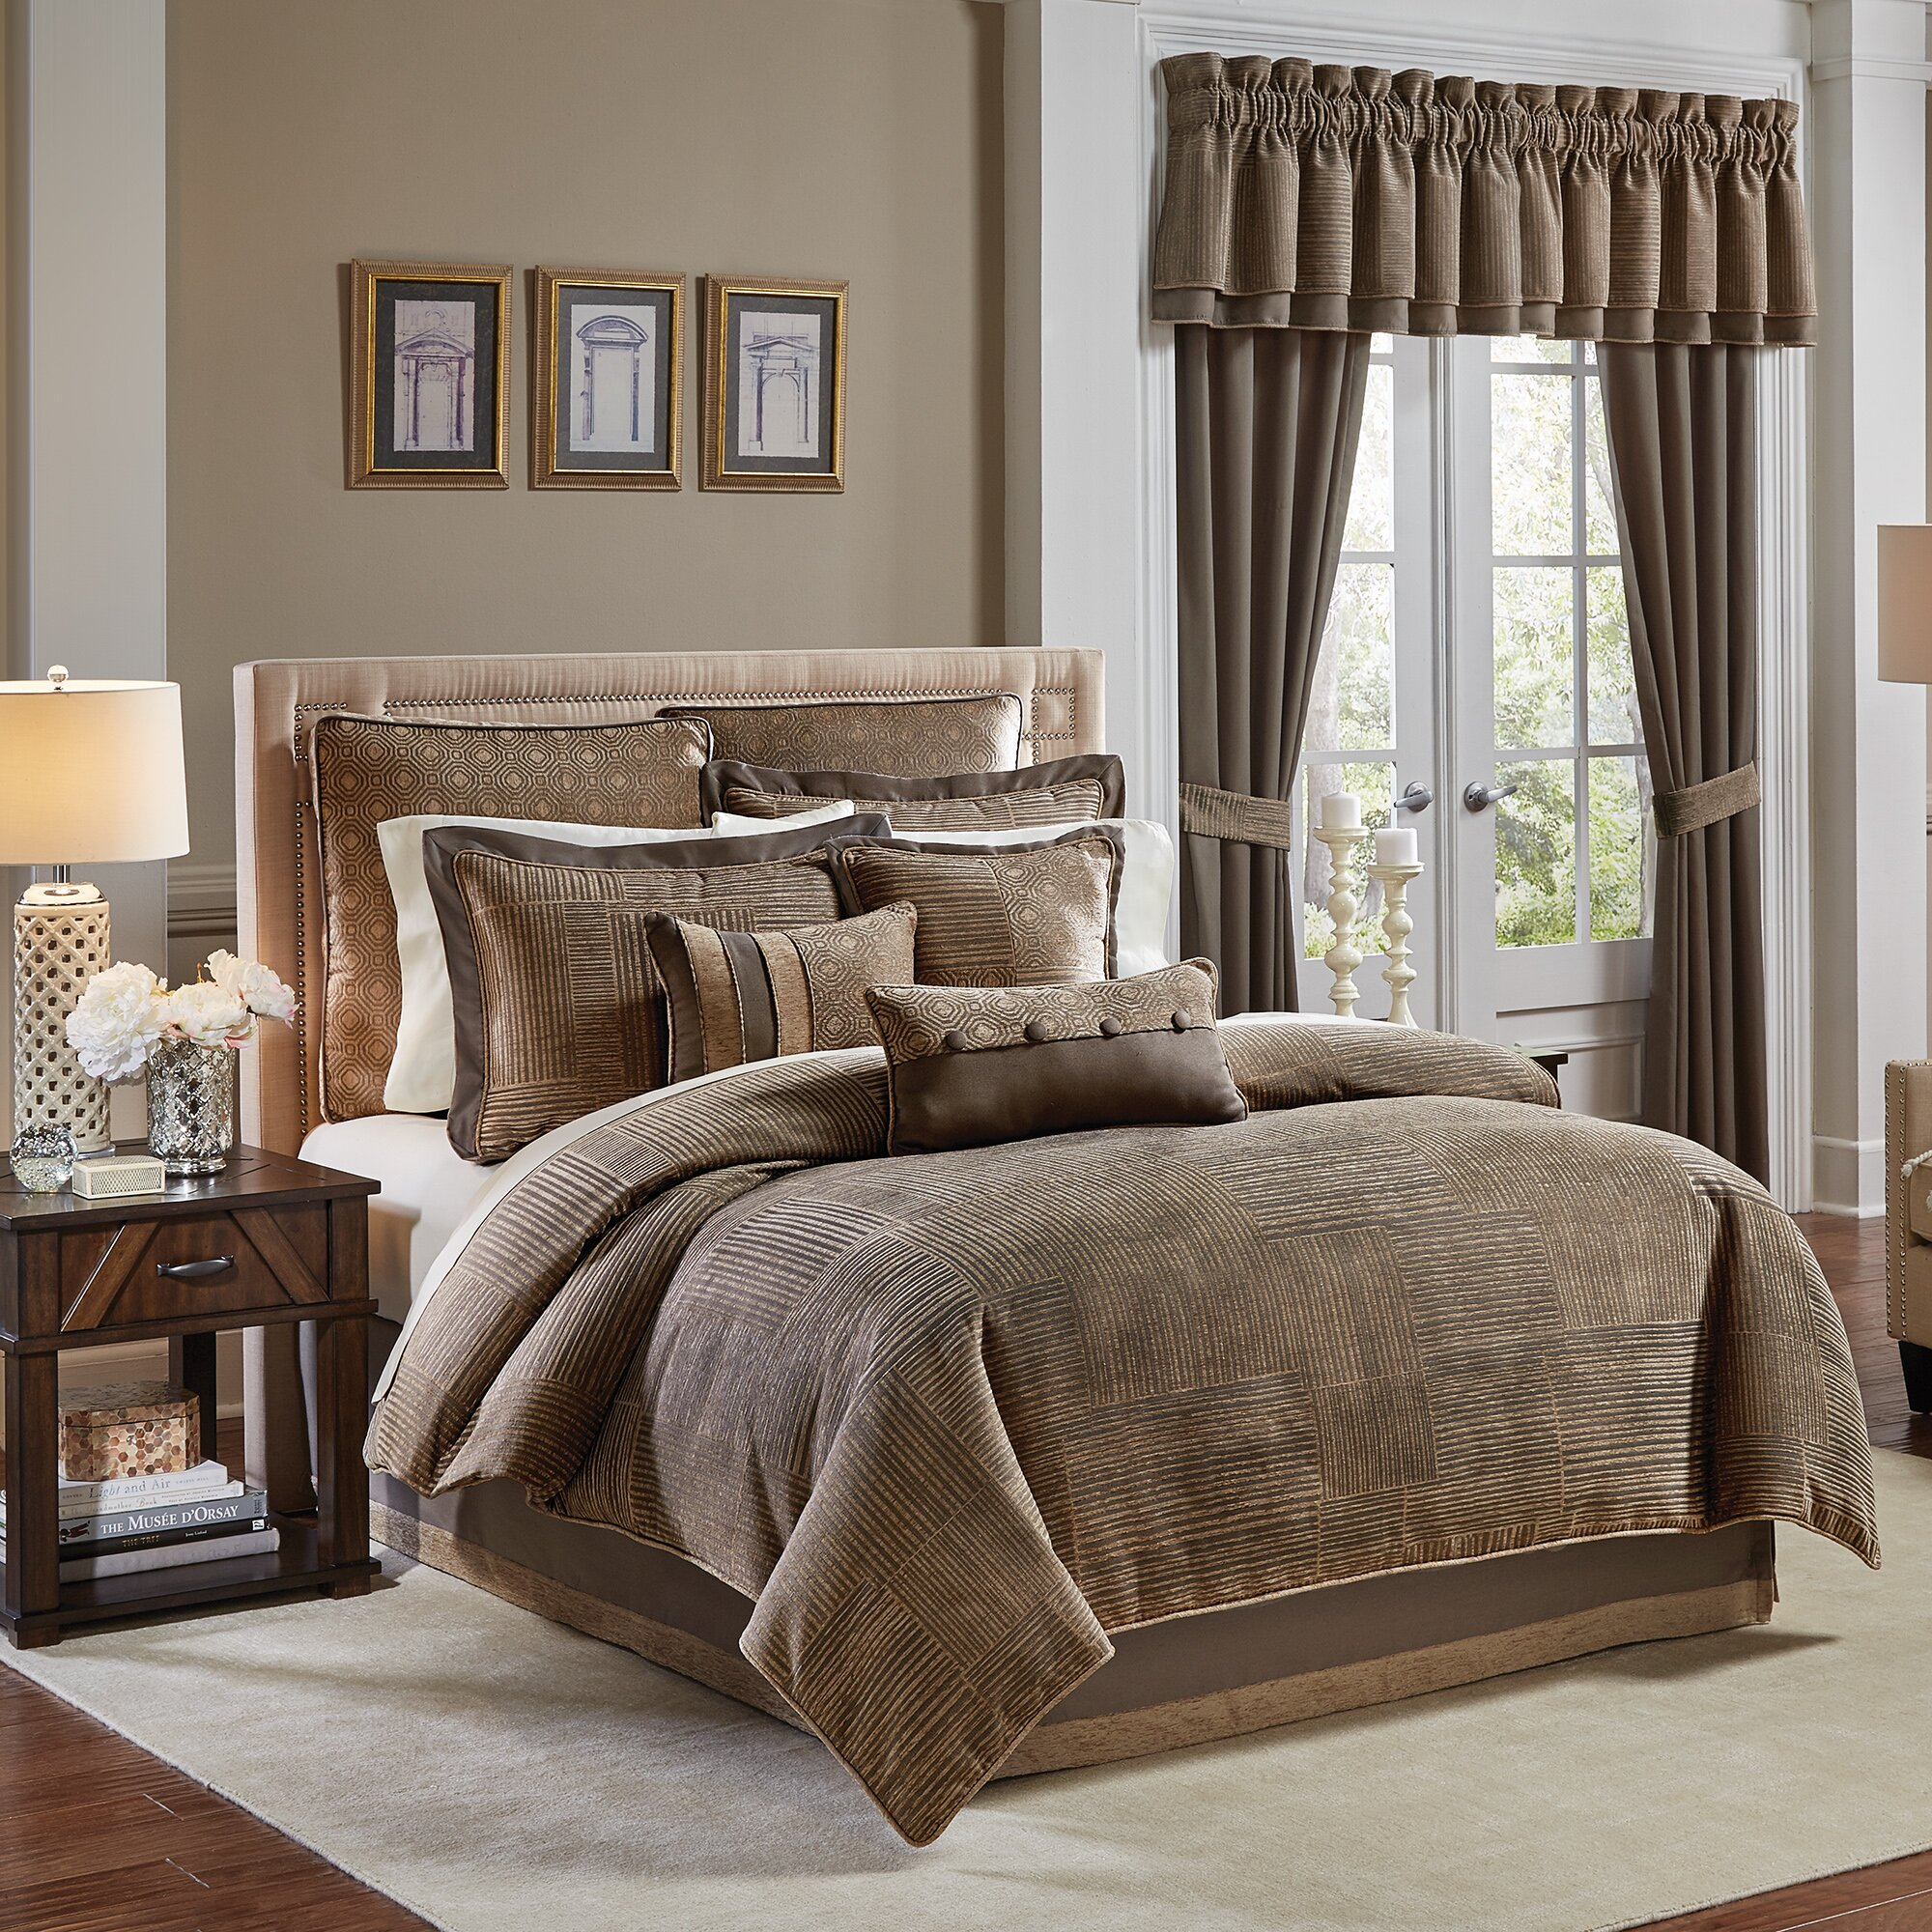 Croscill Benson 4 Piece Comforter Set Amp Reviews Wayfair